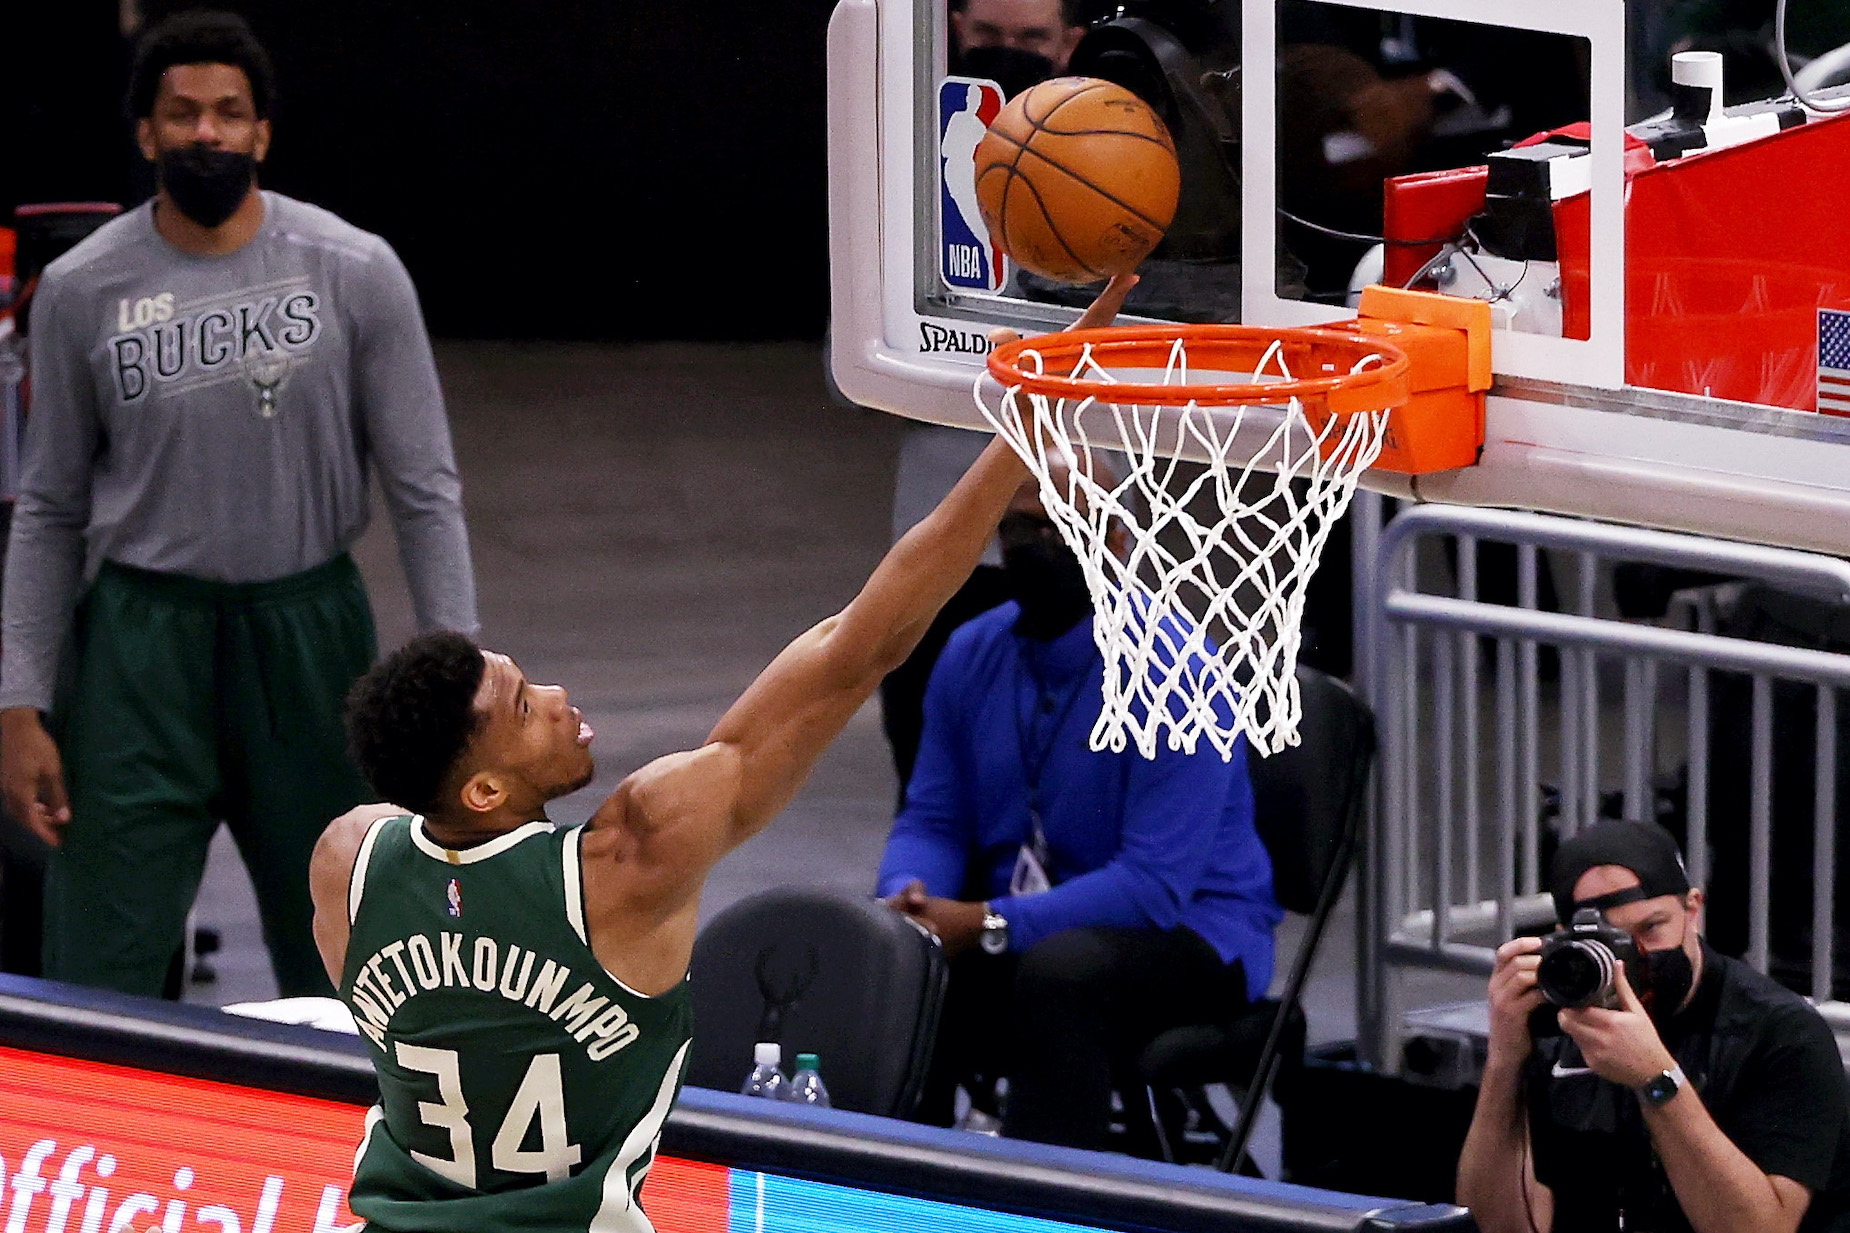 Giannis Antetokounmpo puts up a shot for the Milwaukee Bucks in NBA action